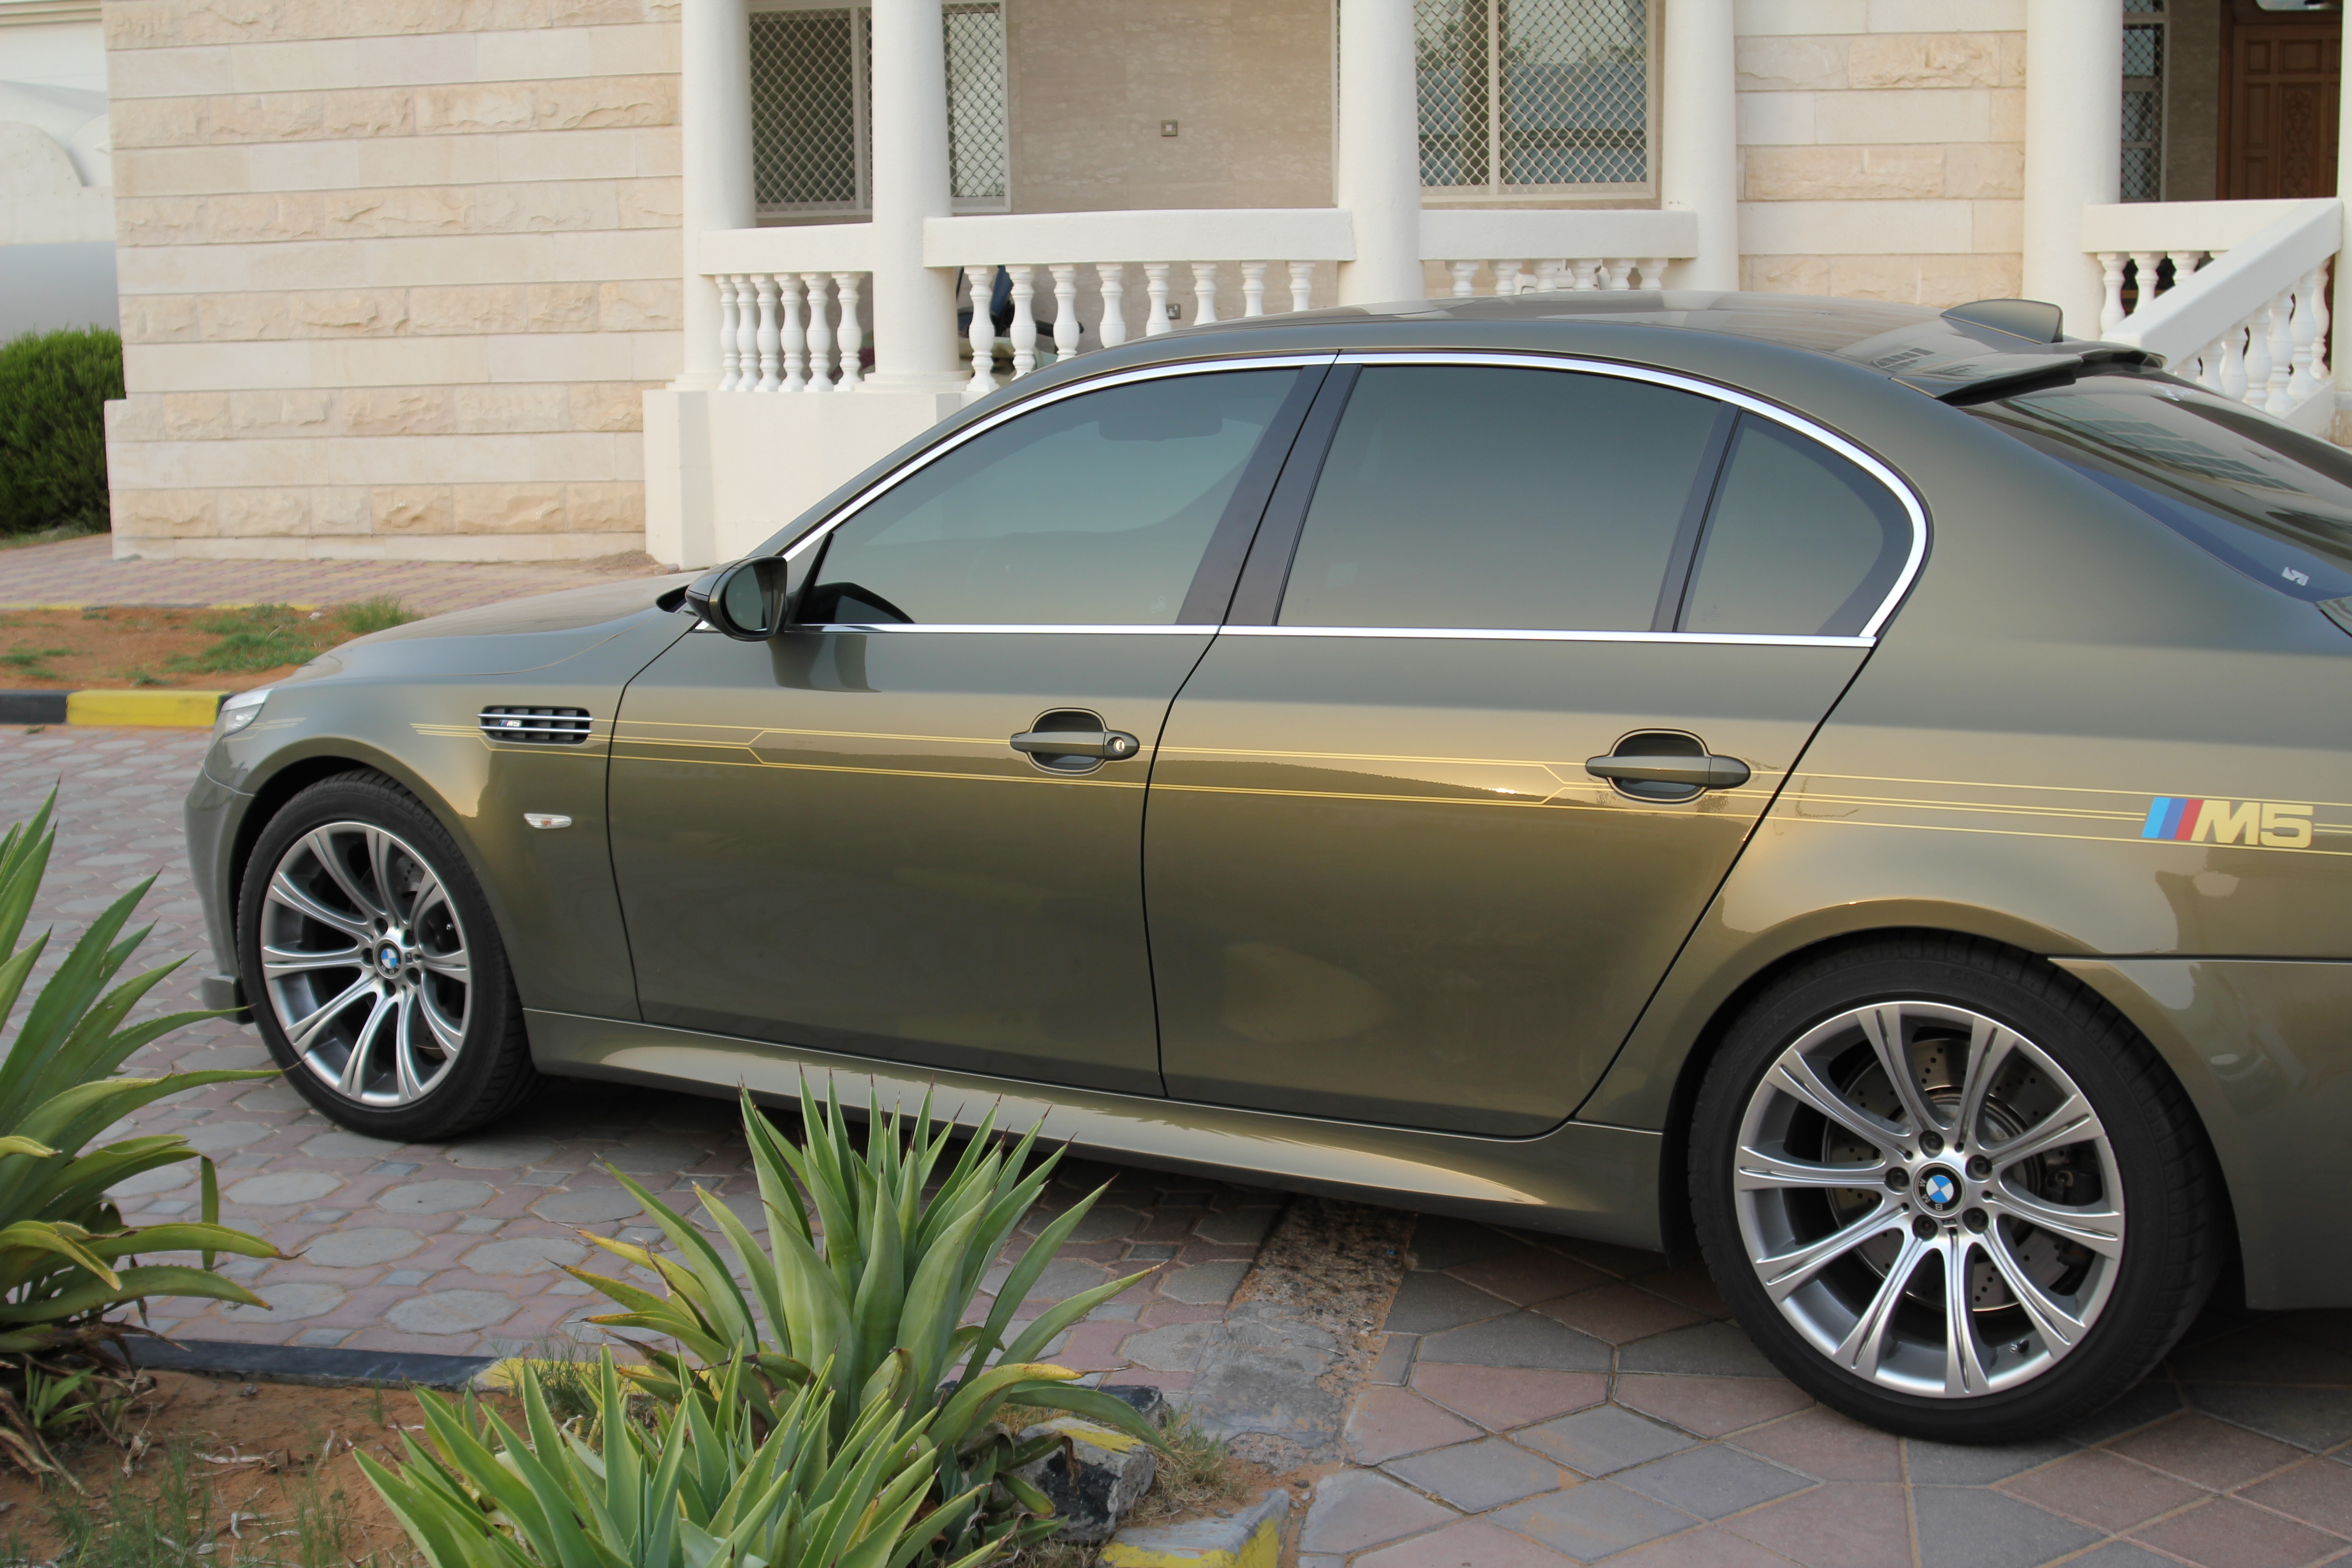 Pictures Individual Bmw M5 Messing Metallic With Bicolour Black Ecru Interiour With Ac Schnitzer Options Prerpare For A Different M5 Bmw M5 Forum And M6 Forums